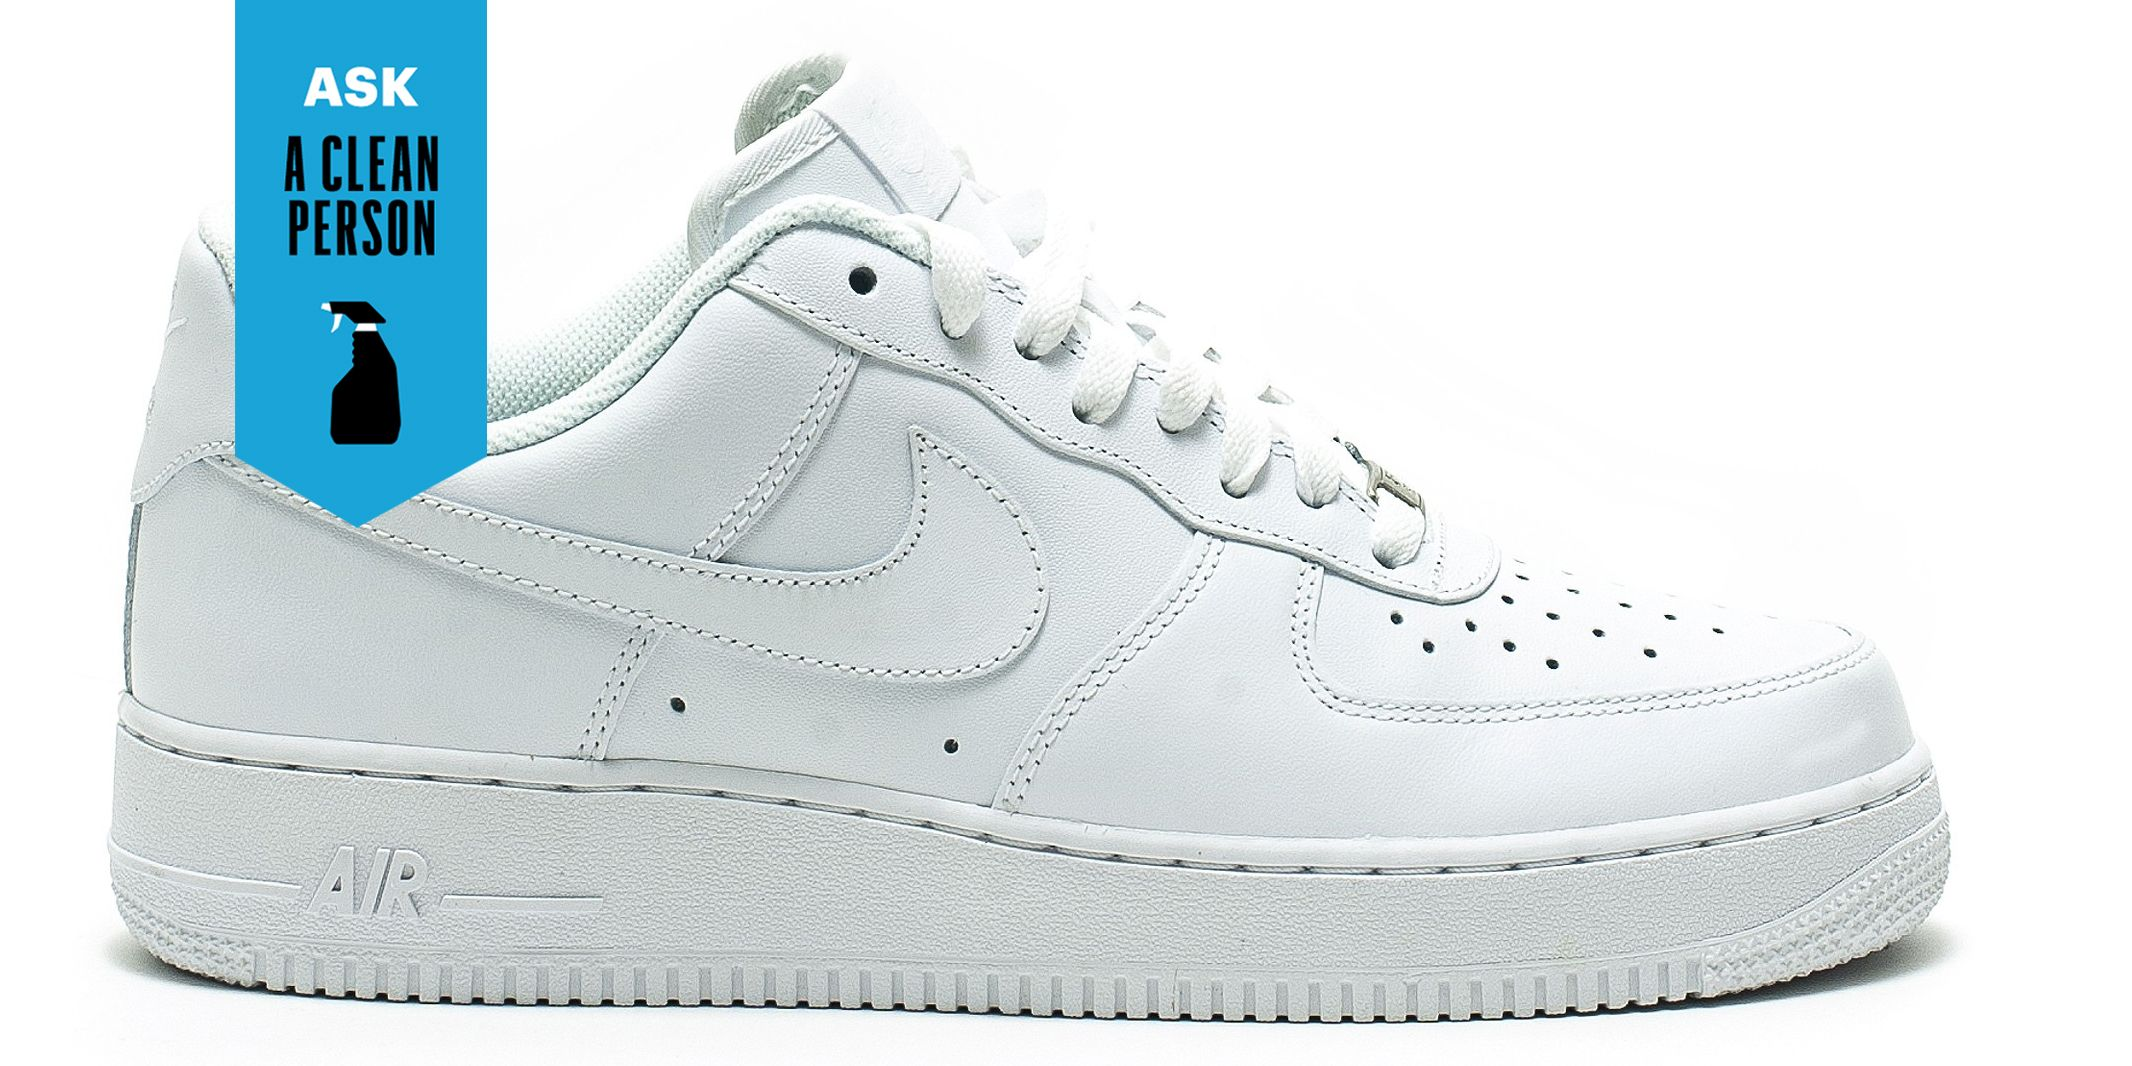 How to Keep Your White Sneakers Spotless This Winter